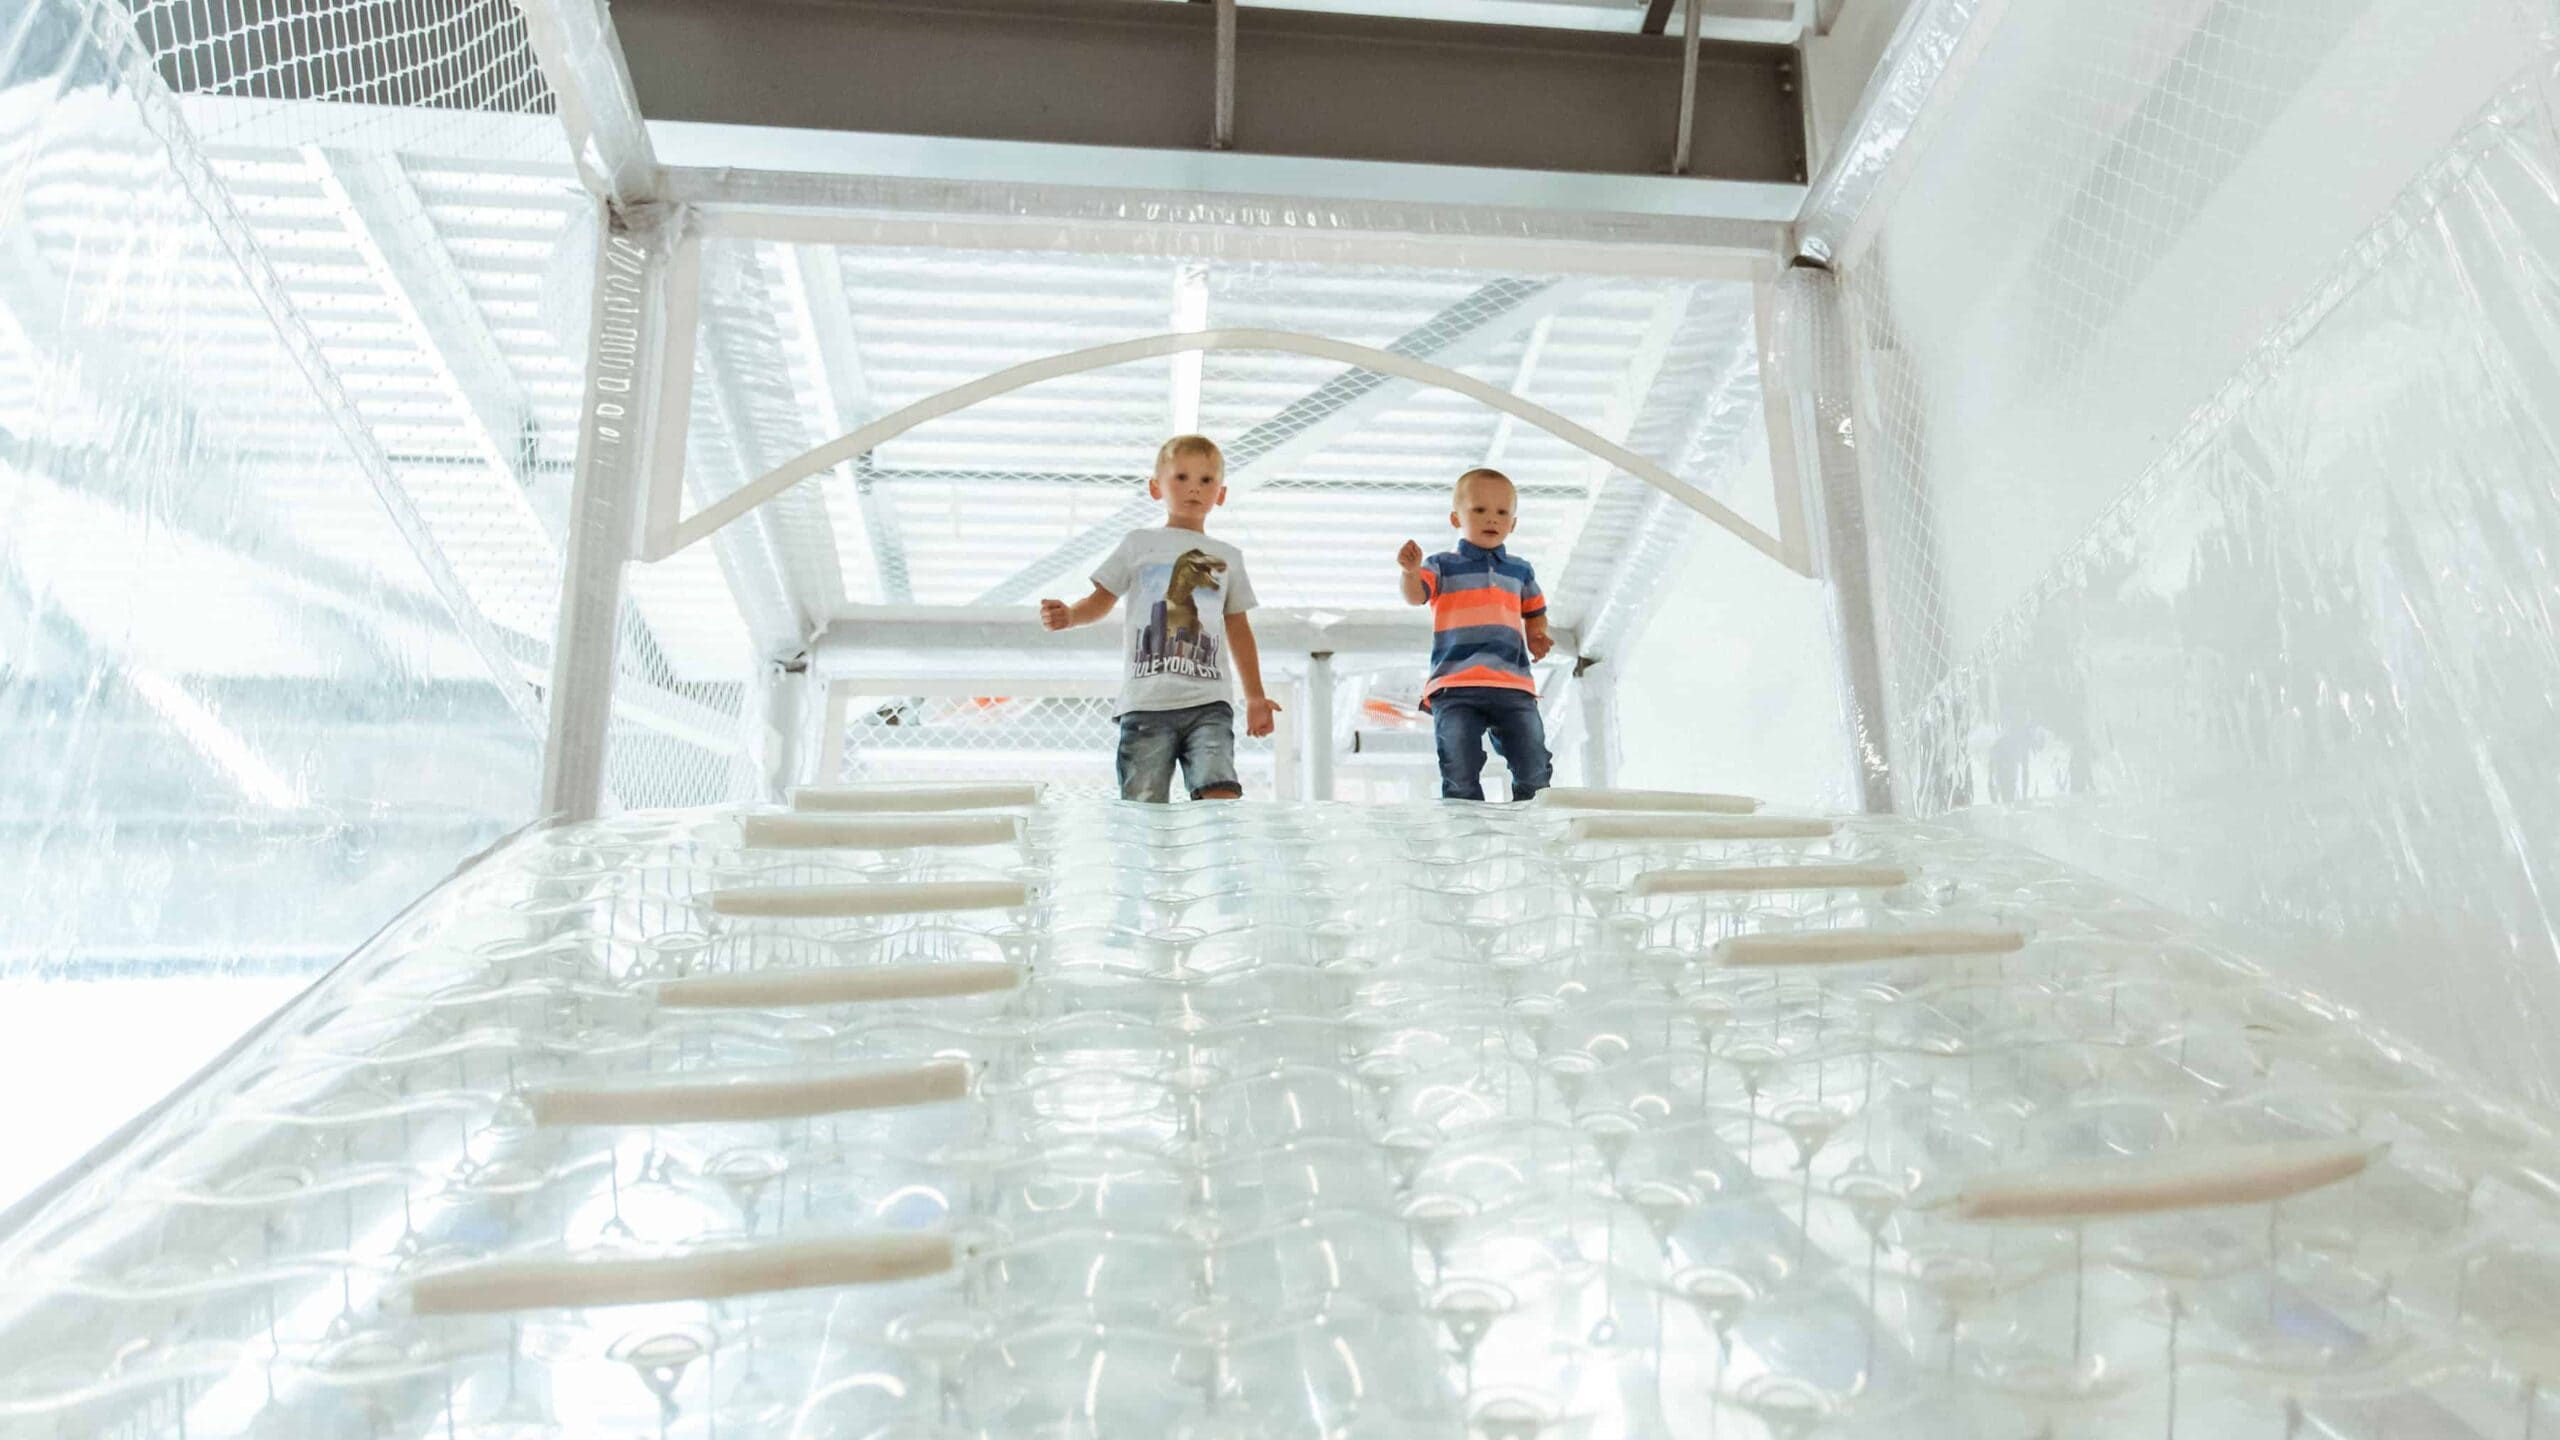 4 reasons to visit soft play over the school holidays